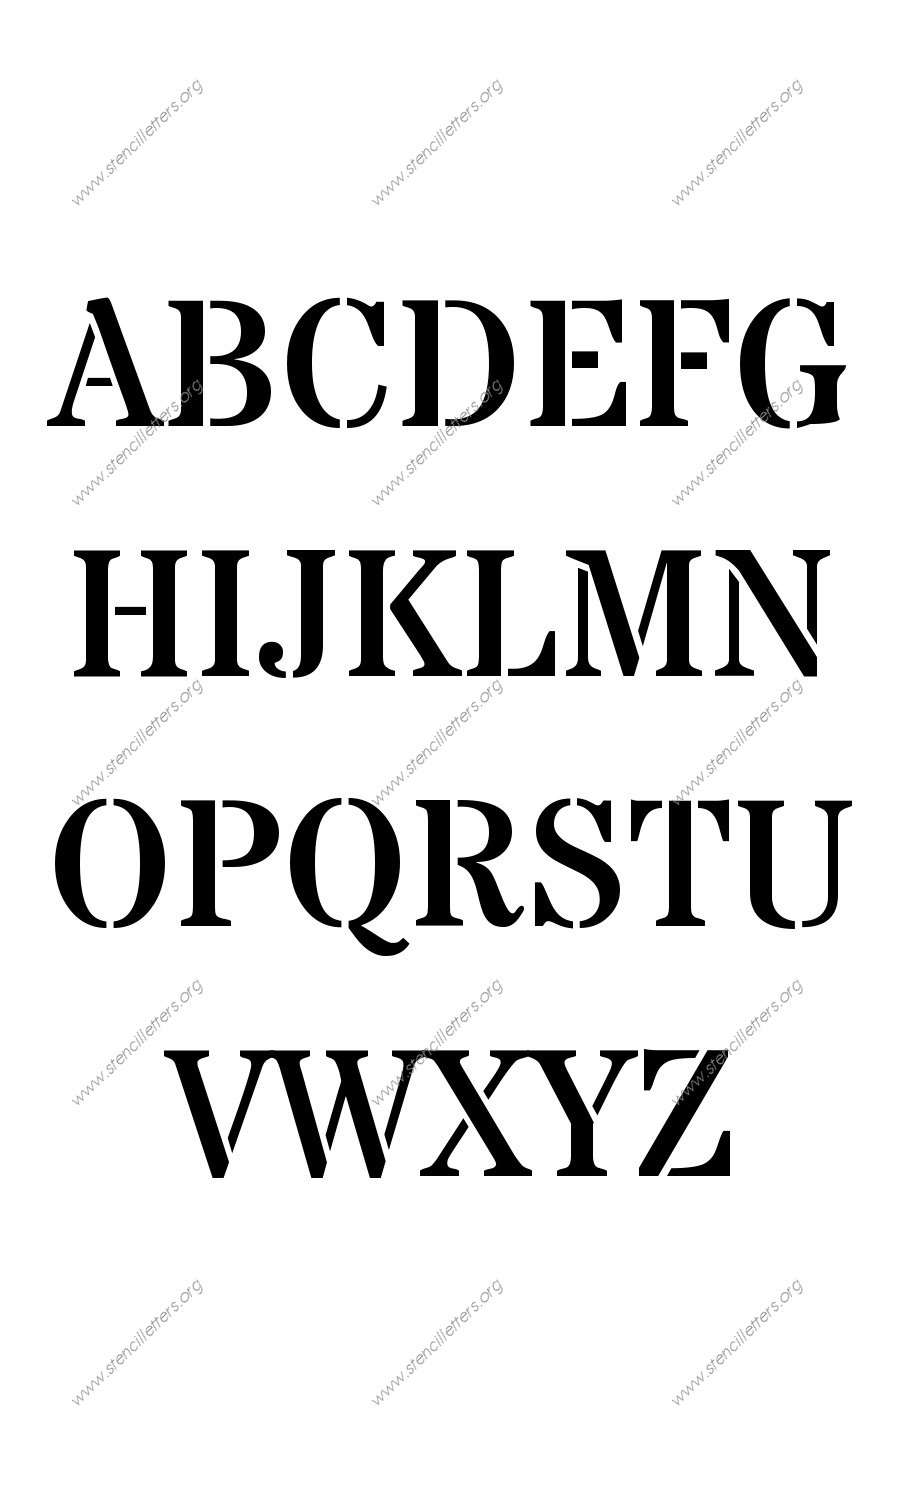 Industrial Army A to Z alphabet stencils